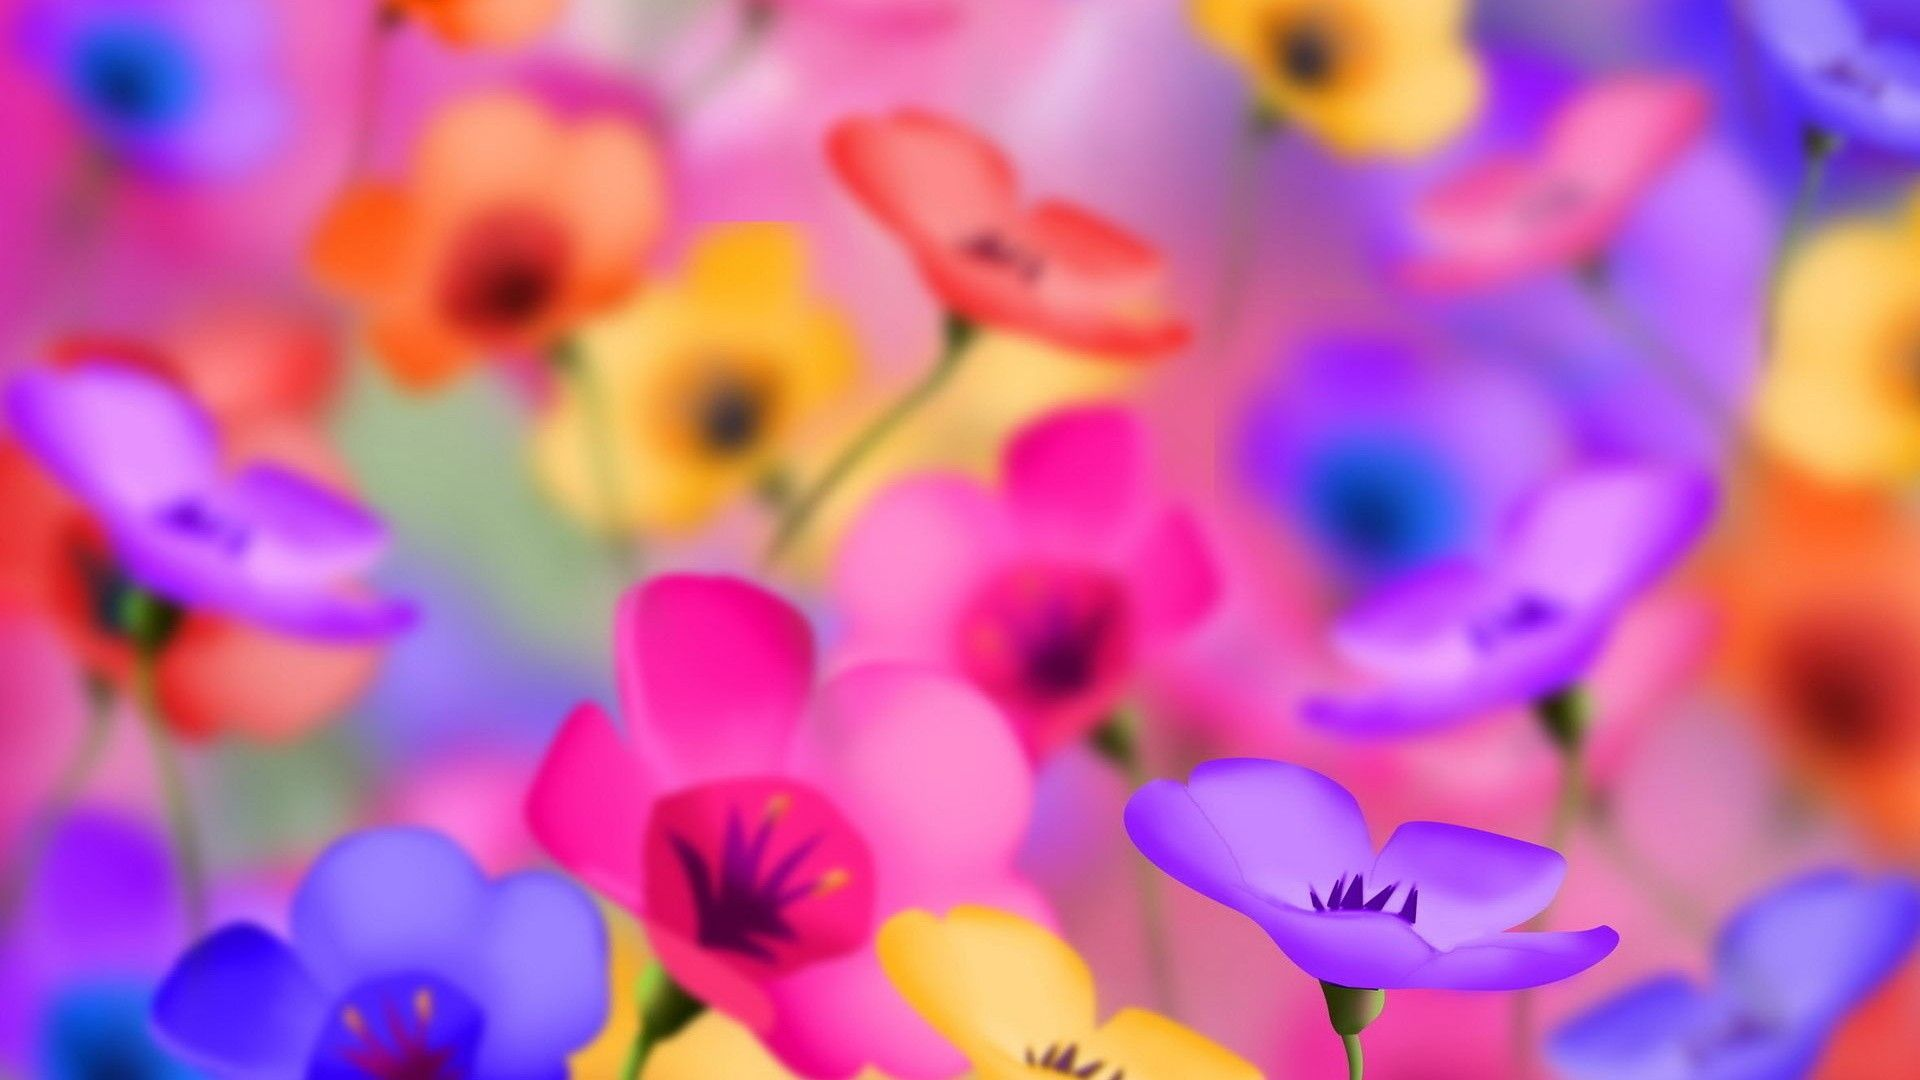 Wallpaper download for android - Collection Of Free Wallpapers For Phones Free Download On Hdwallpapers 1920 1080 Free Wallpapers For